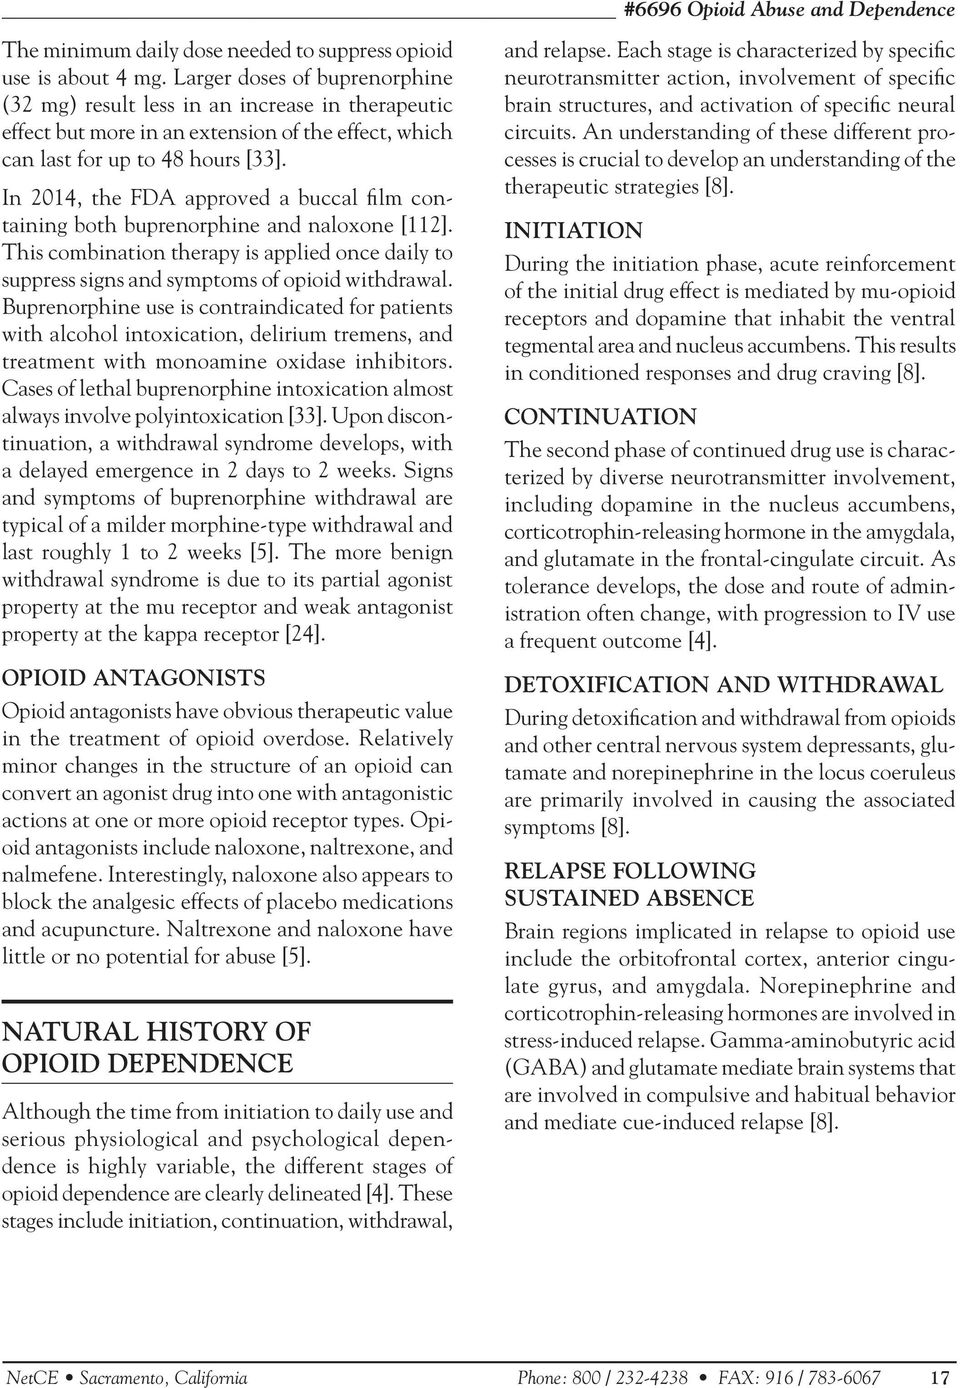 Opioid Abuse and Dependence - PDF